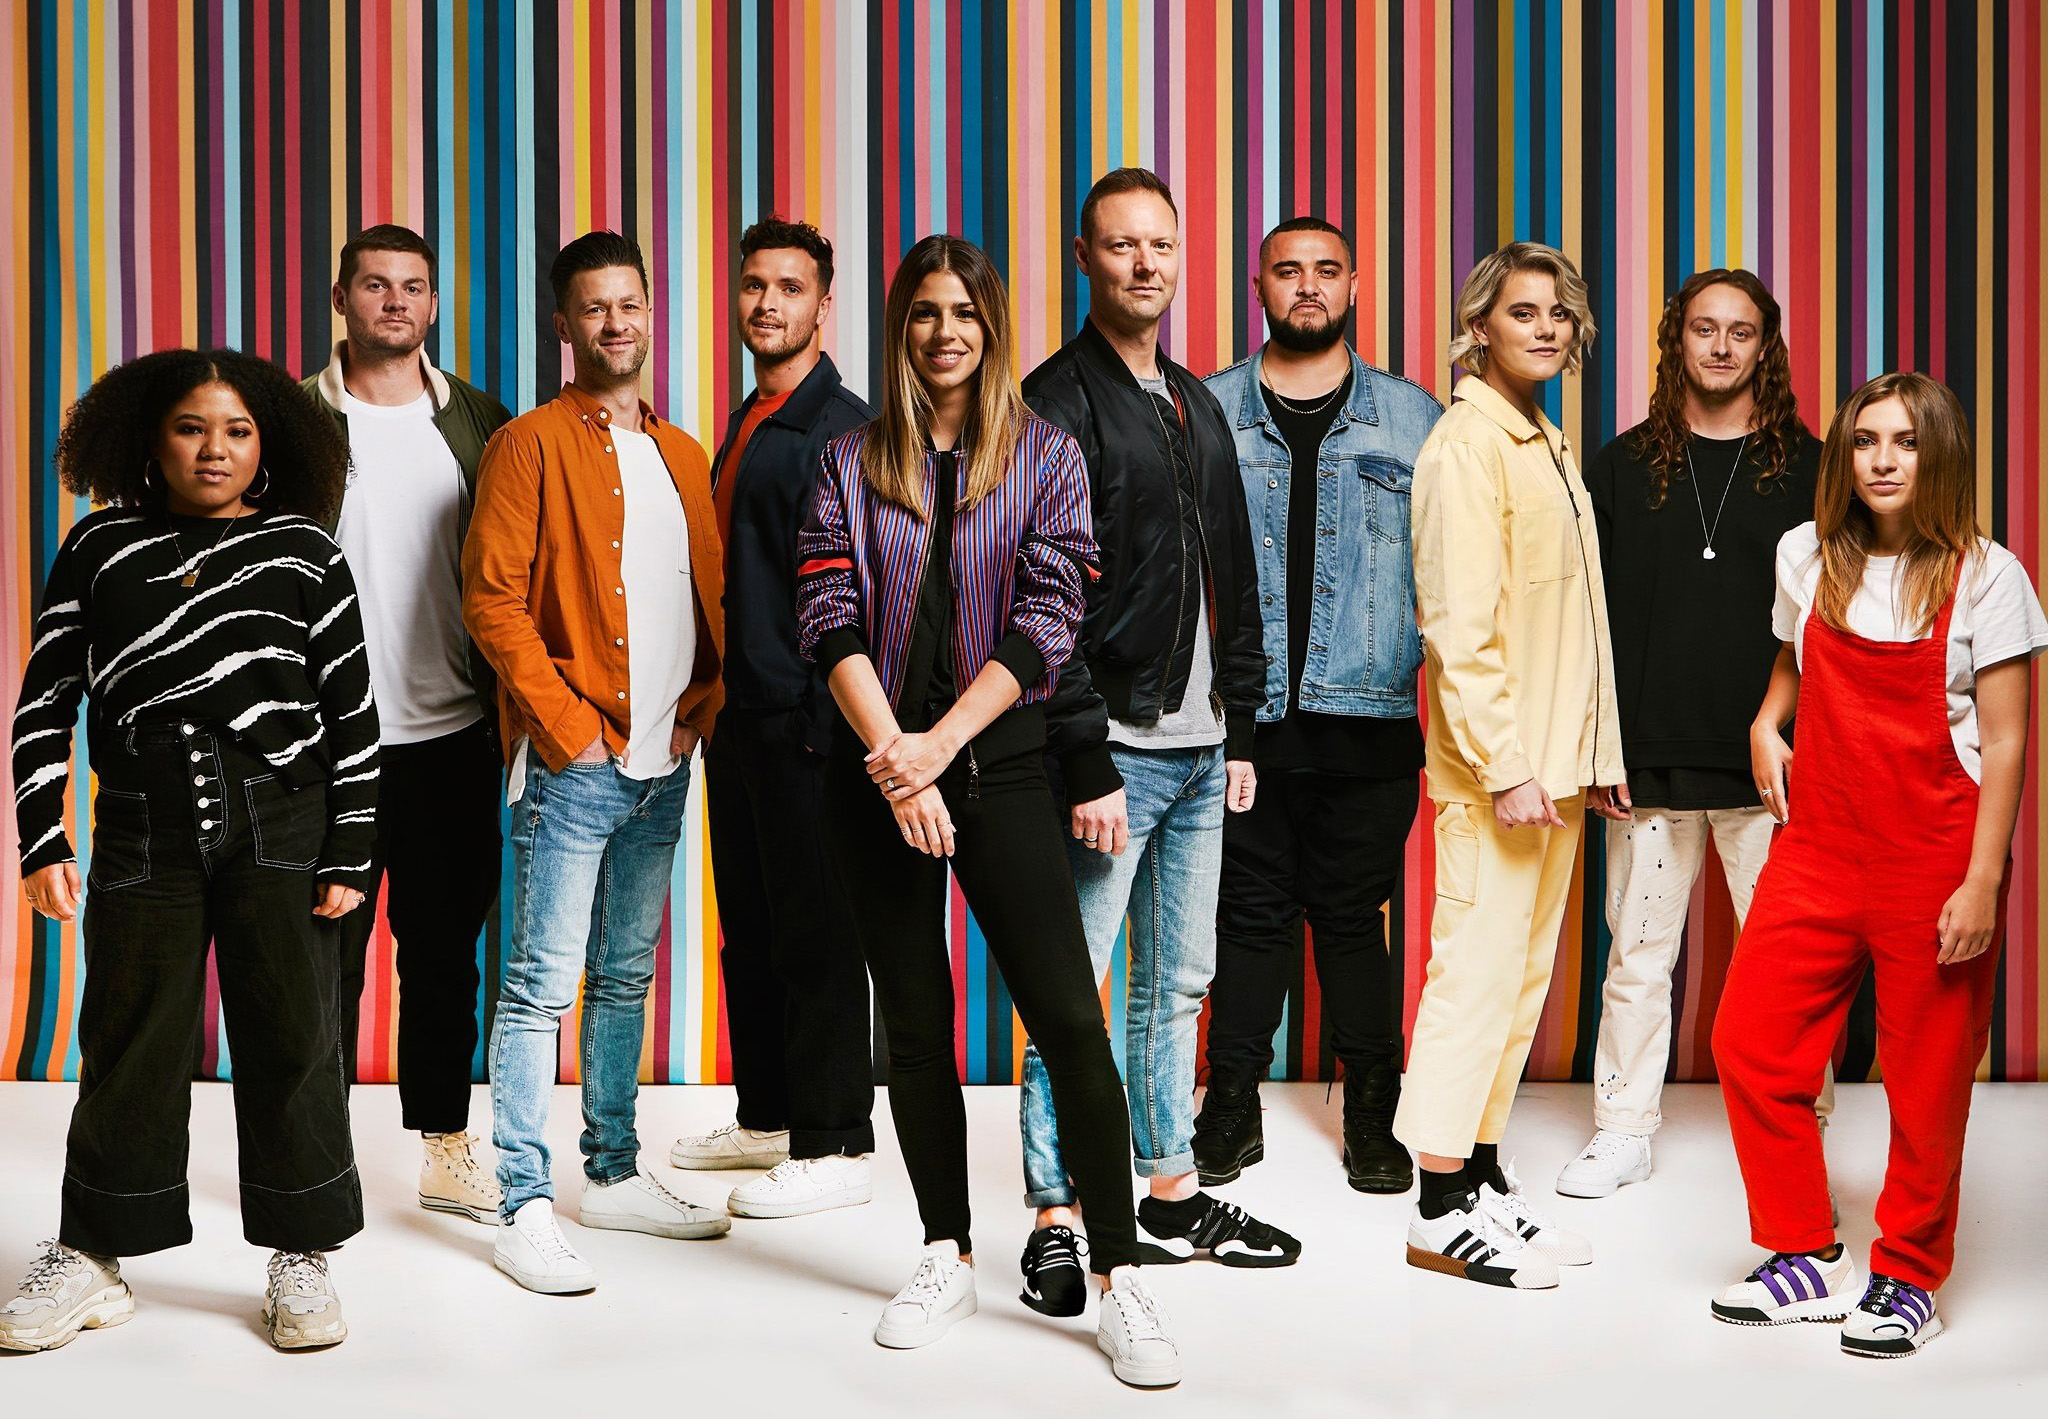 FOTO HILLSONG WORSHIP 2019- edit